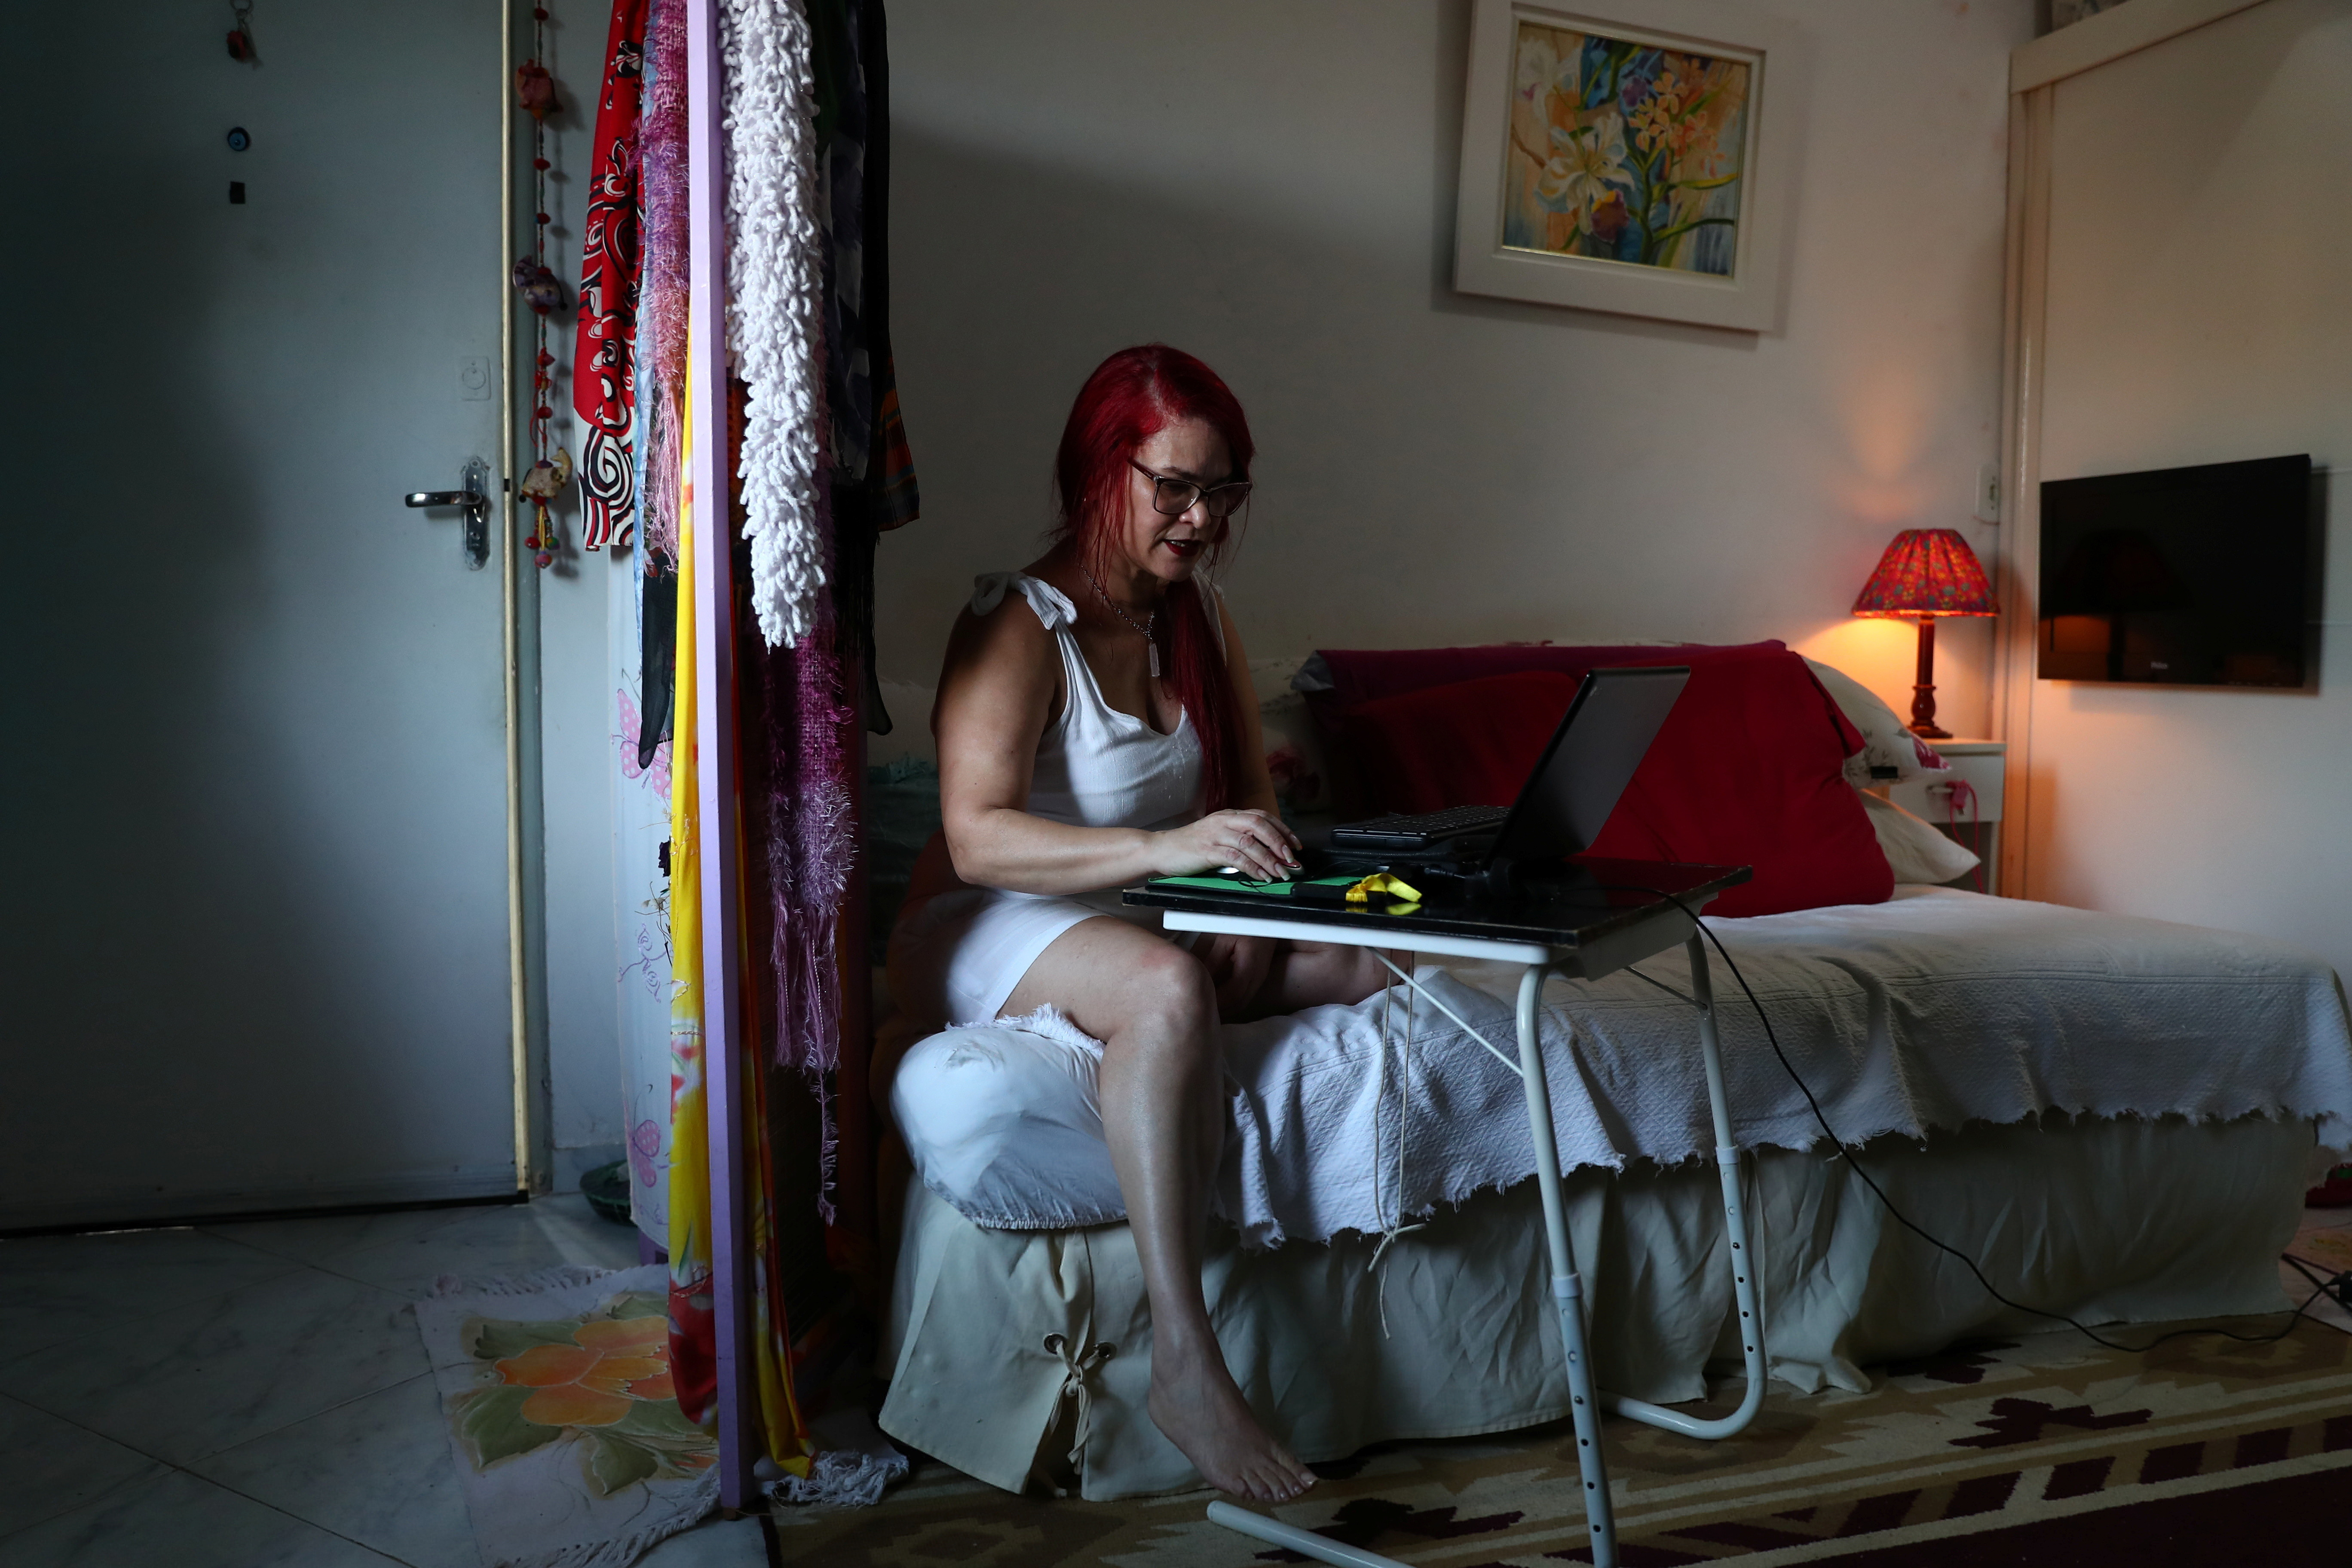 Working from home, or WFH, has become the norm for millions across Europe as a result of the COVID-19 pandemic.